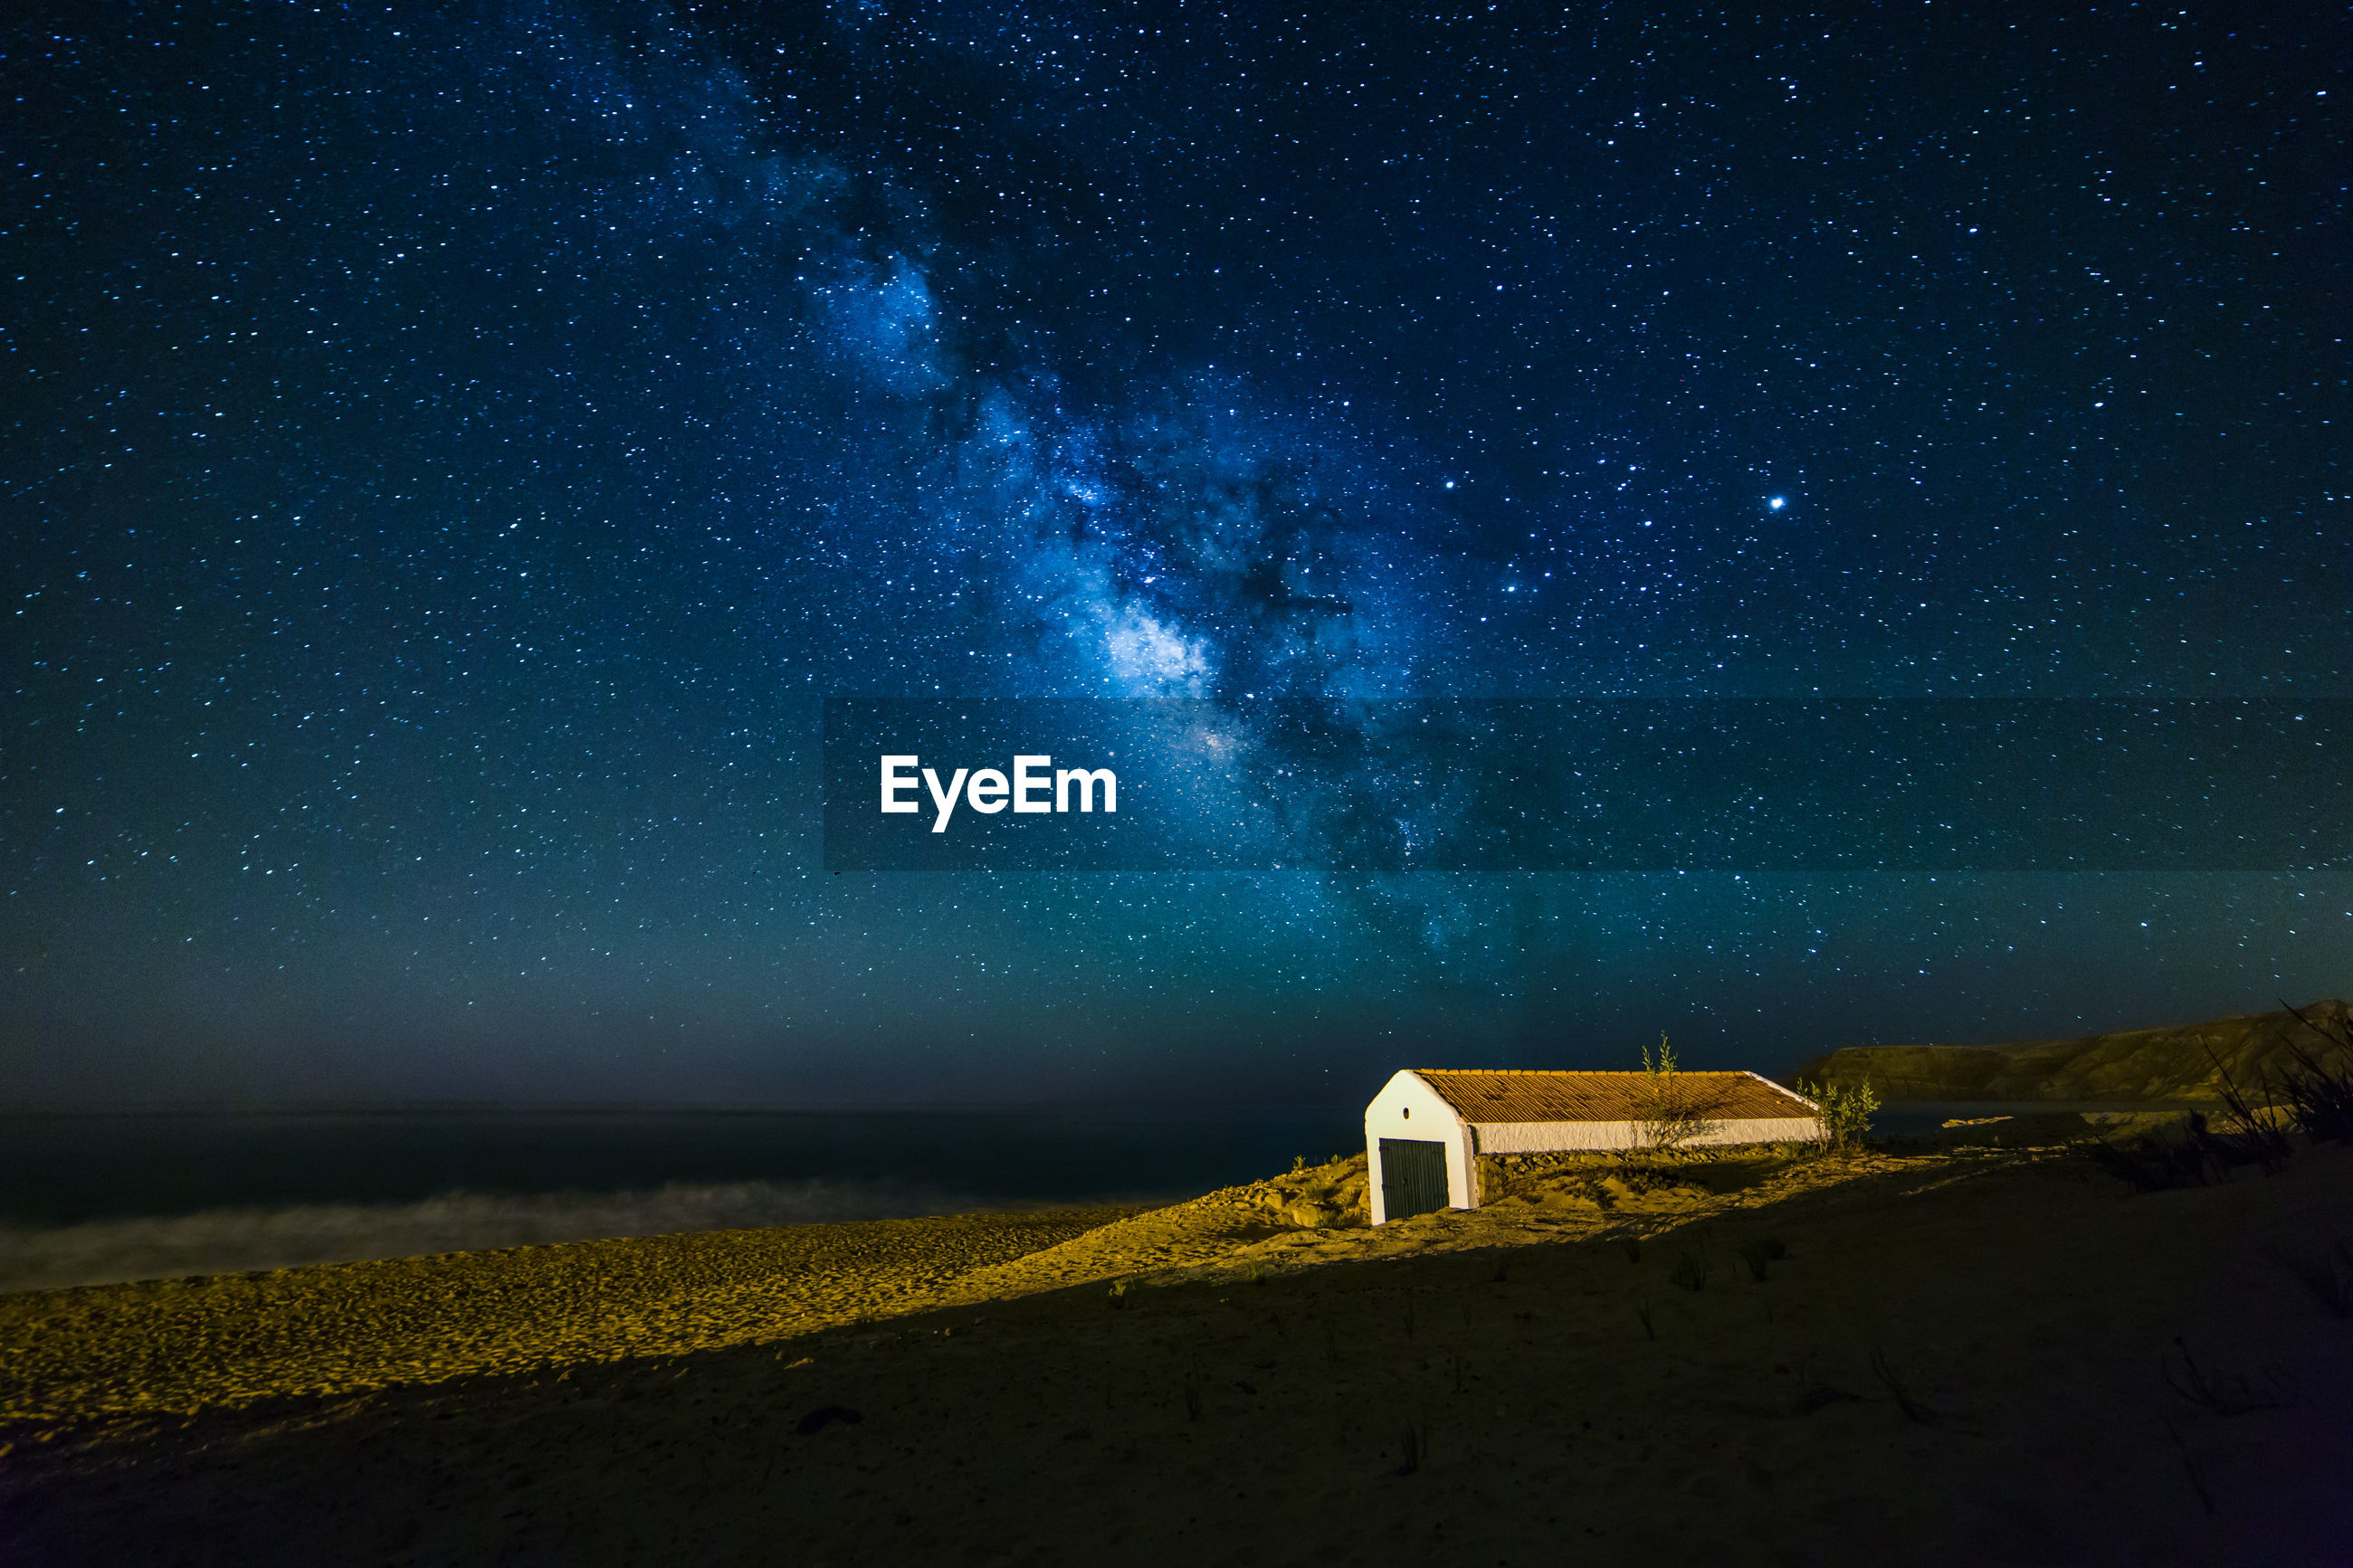 Building on sand by sea against milky way in sky at night